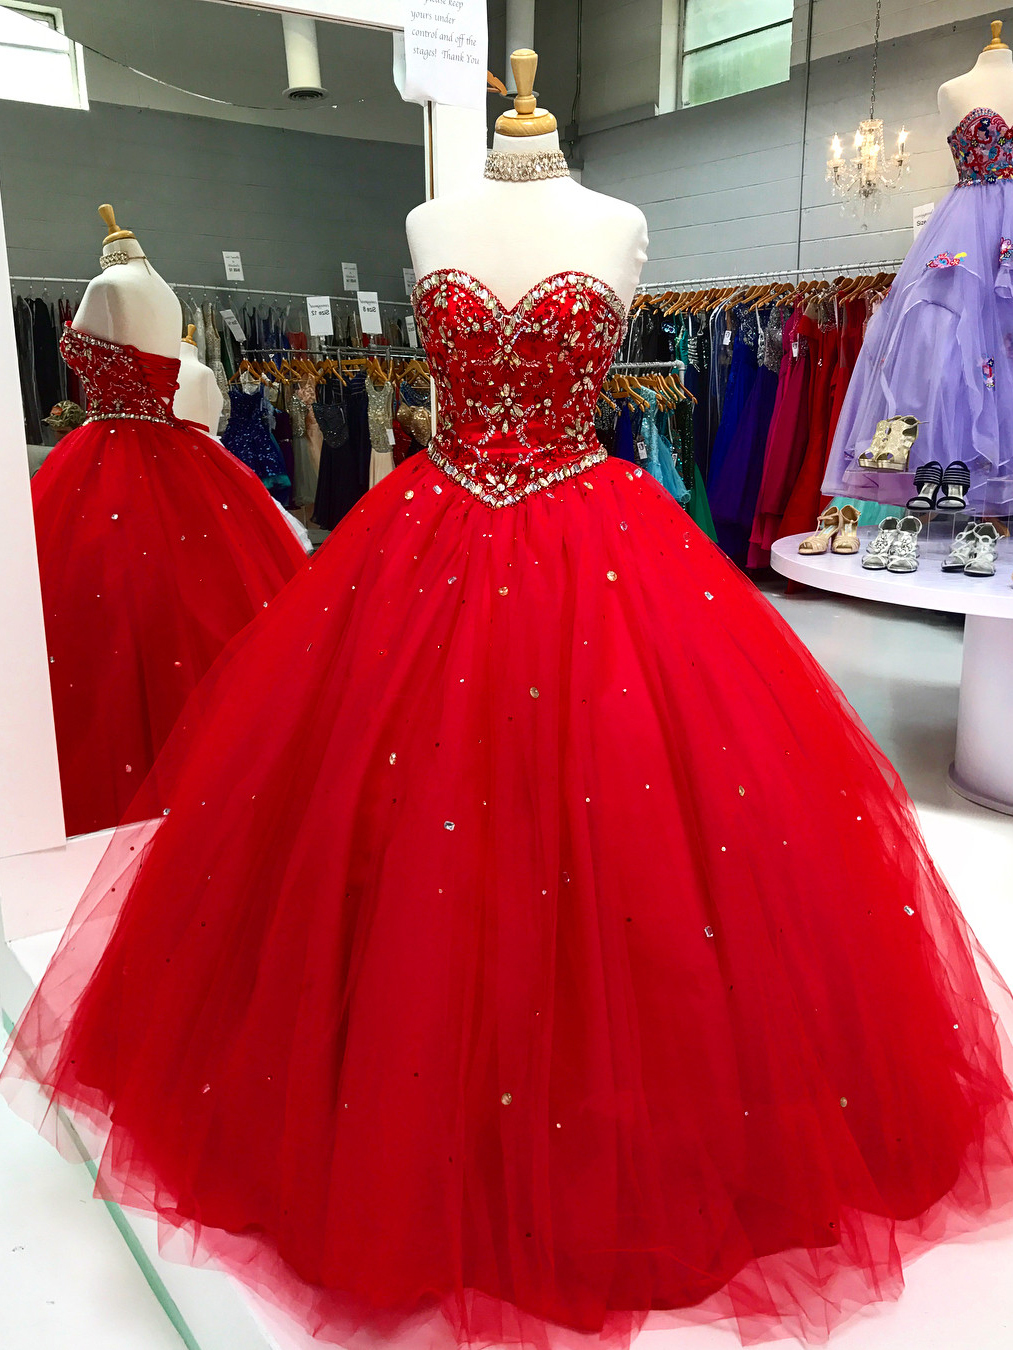 Fashion week Quinceanera red Pretty dresses pictures for woman